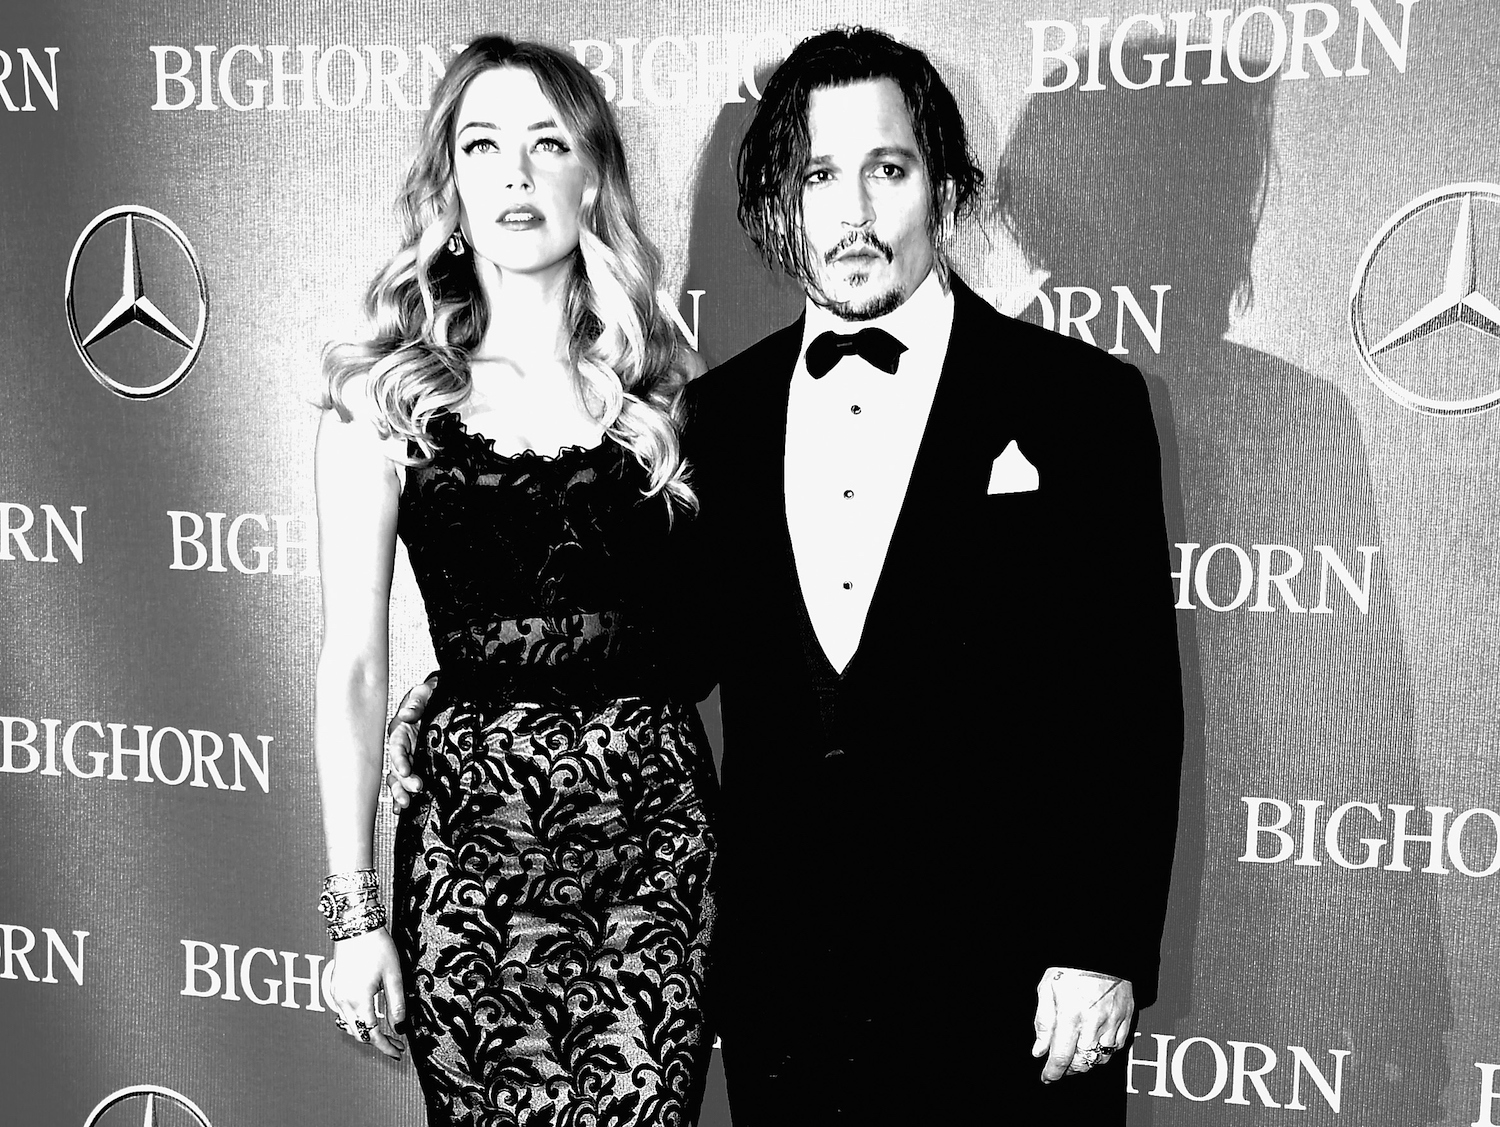 PALM SPRINGS, CA - JANUARY 02: (EDITORS NOTE: Image Converted from Color to BW). Actors Amber Heard and Johnny Depp arrive at the 27th Annual Palm Springs International Film Festival Awards Gala at Palm Springs Convention Center on January 2, 2016 in Palm Springs, California. (Photo by Frazer Harrison/Getty Images)